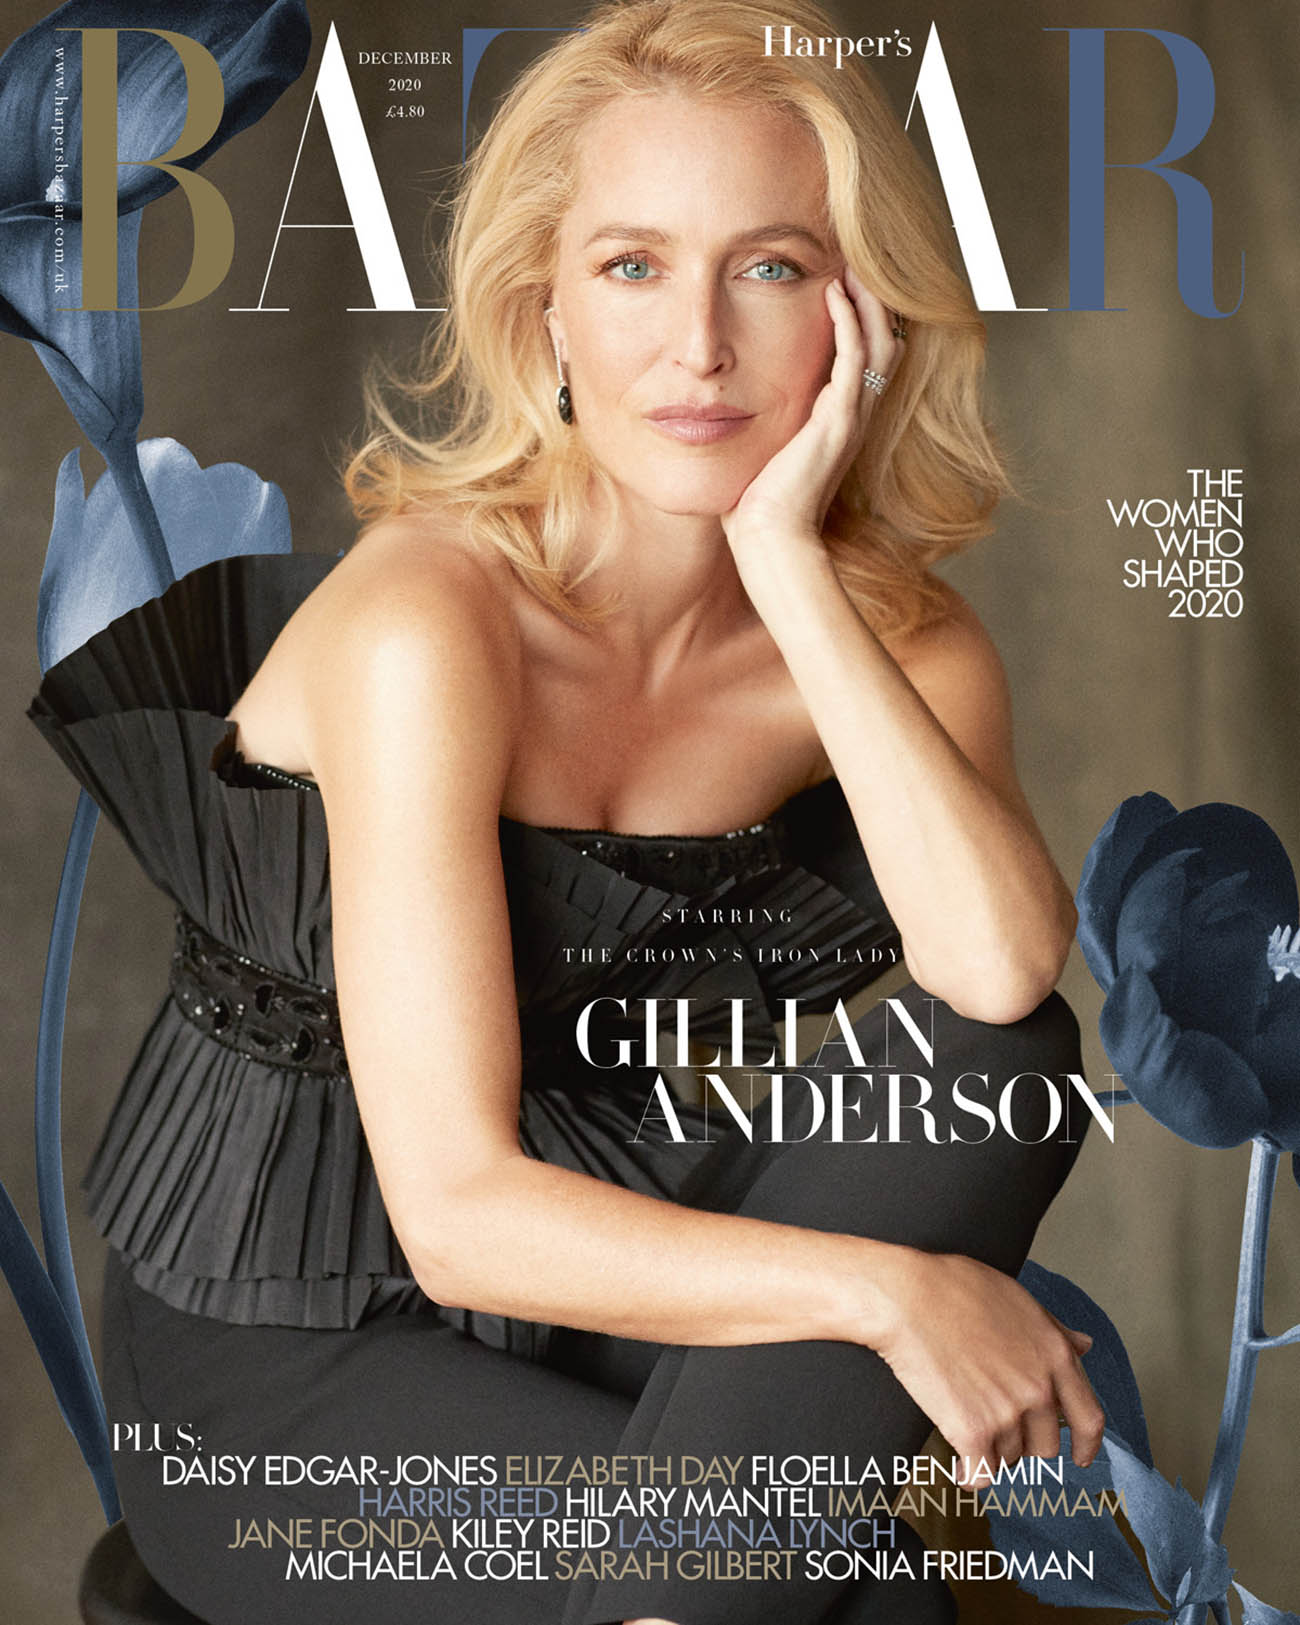 Gillian Anderson covers Harper's Bazaar UK December 2020 by Richard Phibbs